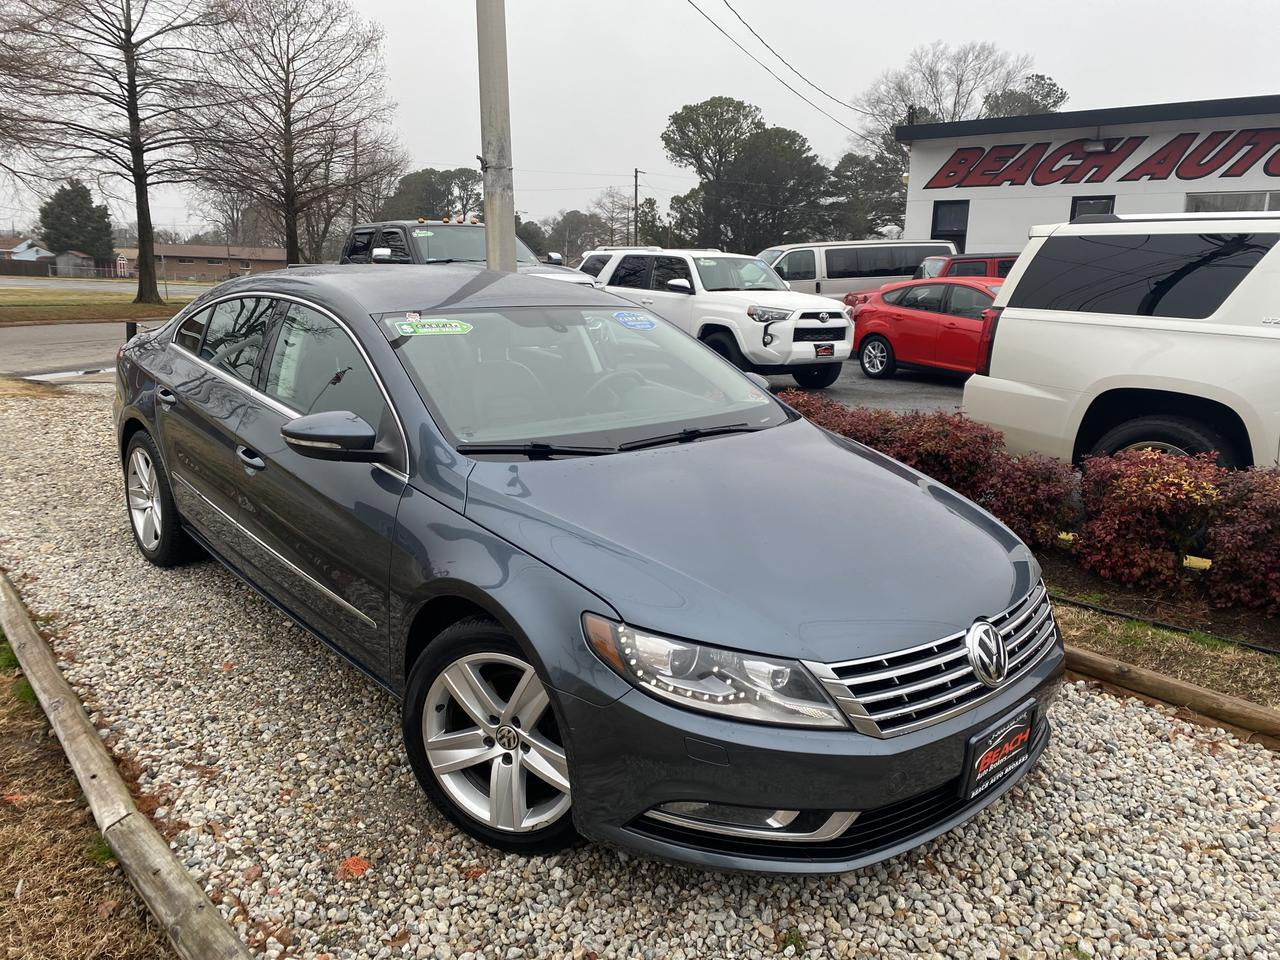 2013 VOLKSWAGEN CC SPORT, WARRANTY, LEATHER, HEATED SEATS, BLUETOOTH, AUX/USB PORT, PARKING SENSORS! Norfolk VA